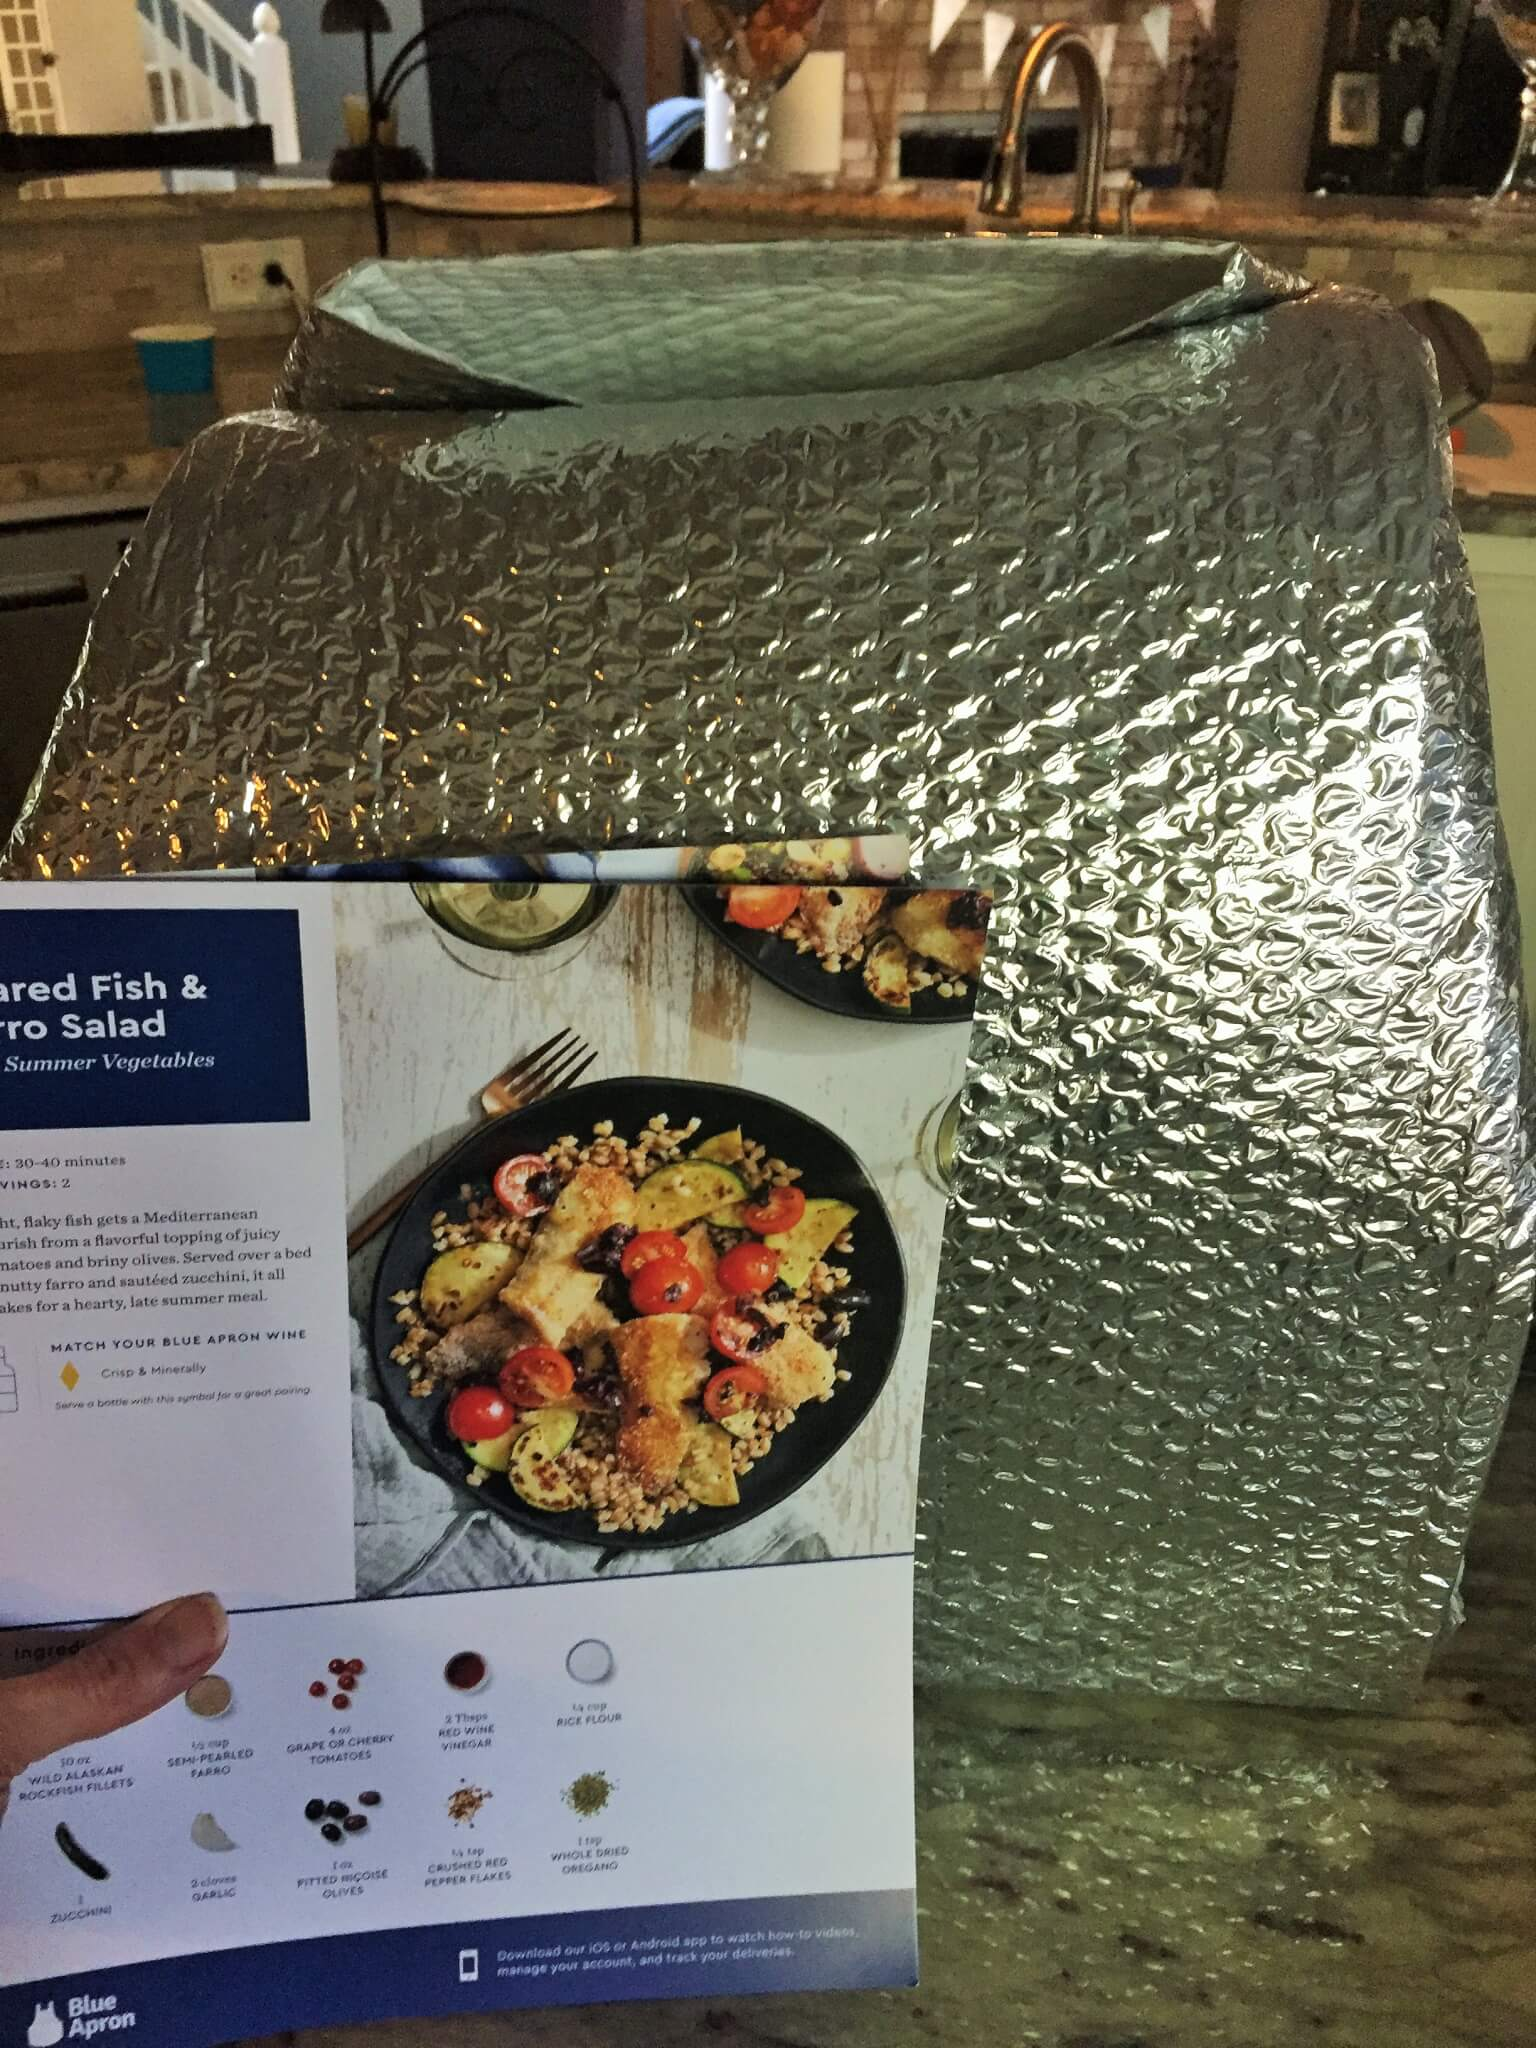 Blue Apron Meal Kit Insulated Bag with Recipe Cards